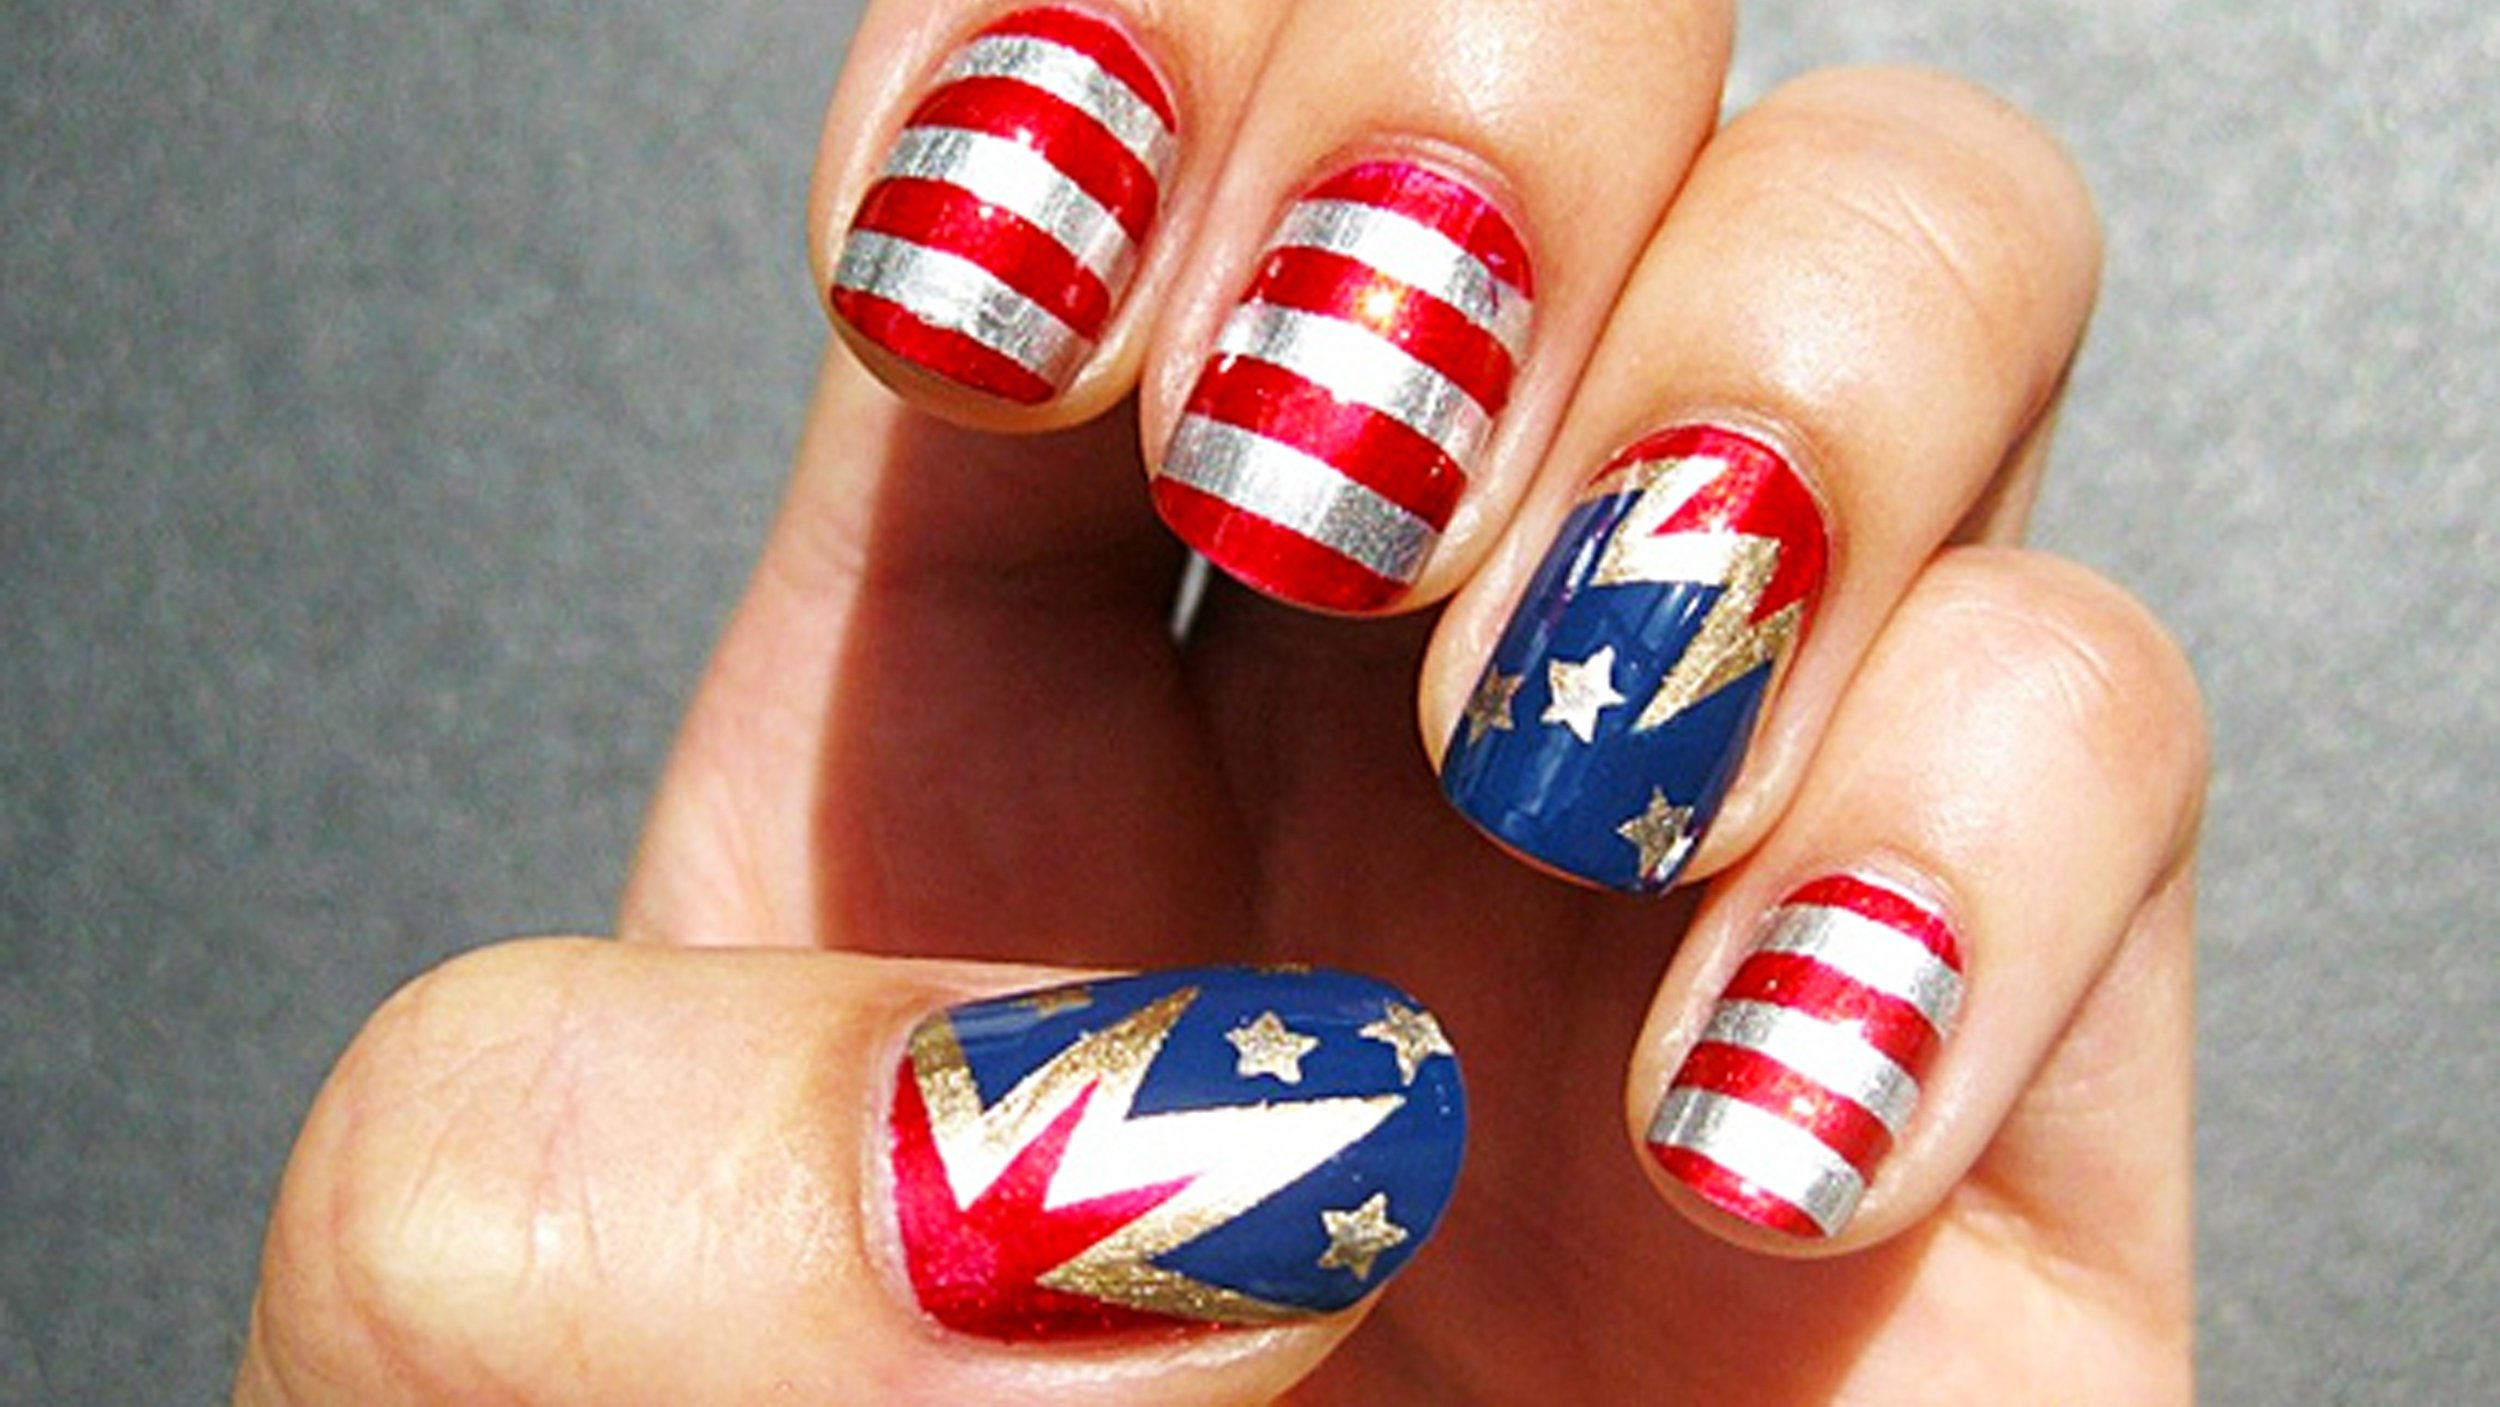 10 Awesome Fourth Of July Nail Art Ideas fourth of july nail art ideas red white and sparkle 2